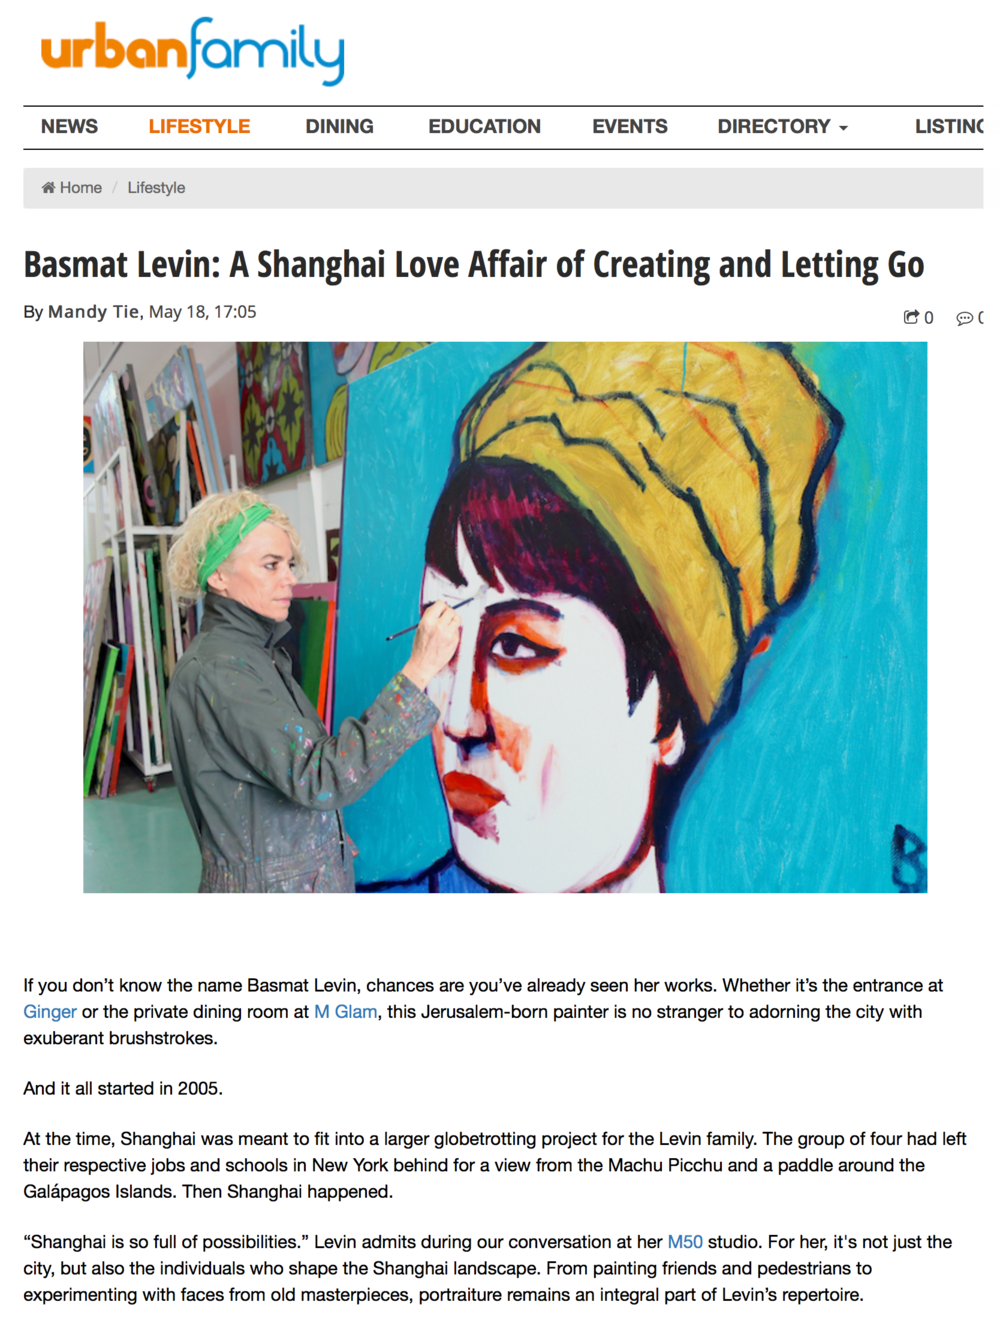 """UrbanFamily, 18 May, 2018 """"Basmat Levin: A Shanghai Love Affair of Creating and Letting Go""""  Learn More"""